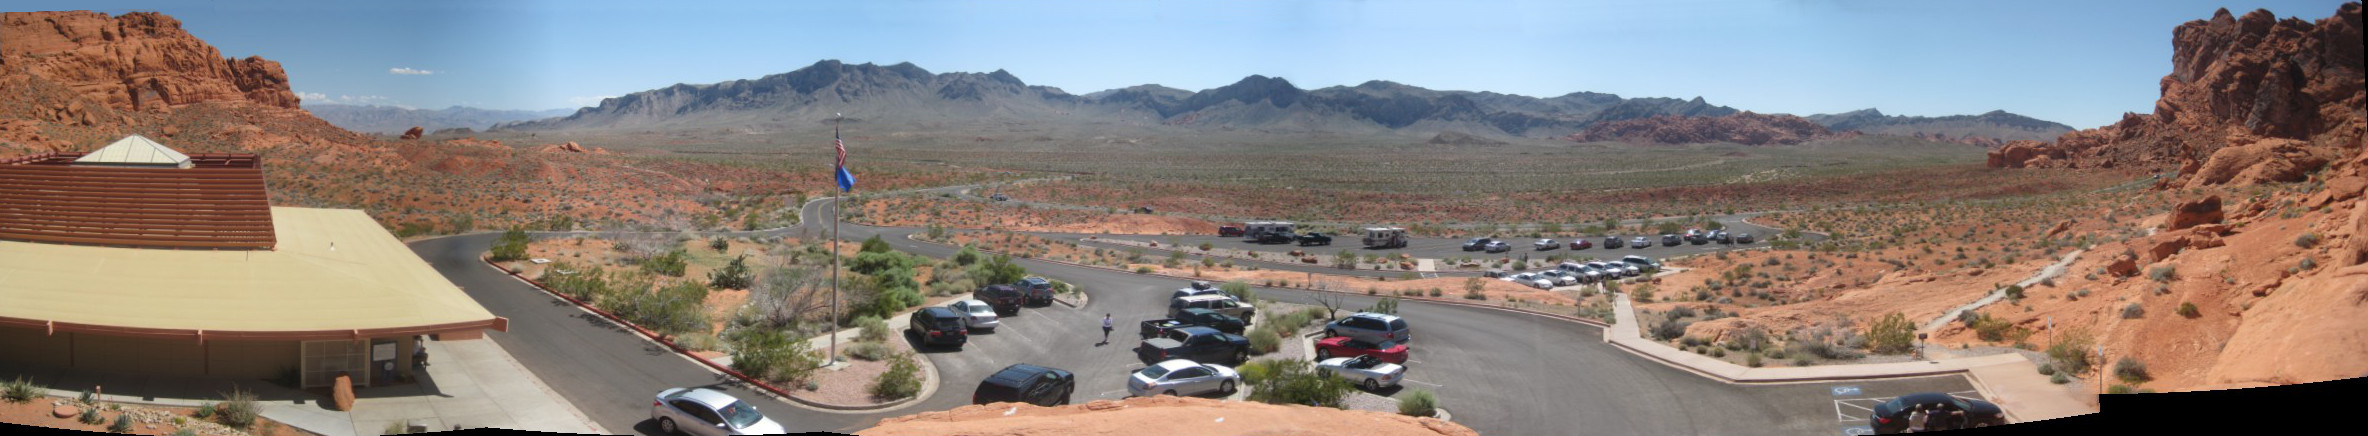 panoramic photo of the Valley of Fire, taken from the climbing rock next to the visitor's center